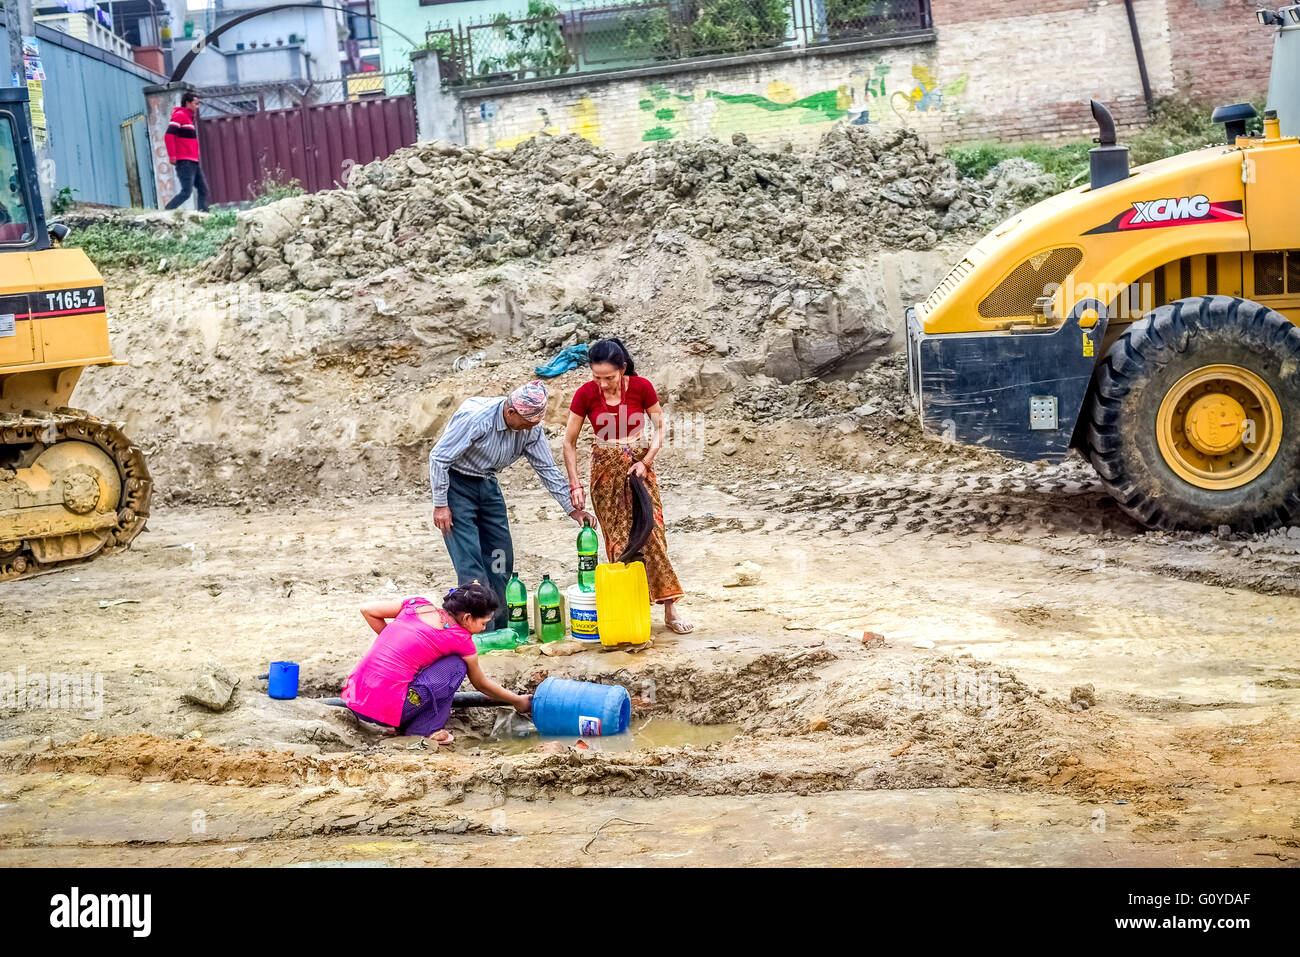 A local family takes water from a broken water line during the dry season in Kathmandu, one year after the 2015 - Stock Image